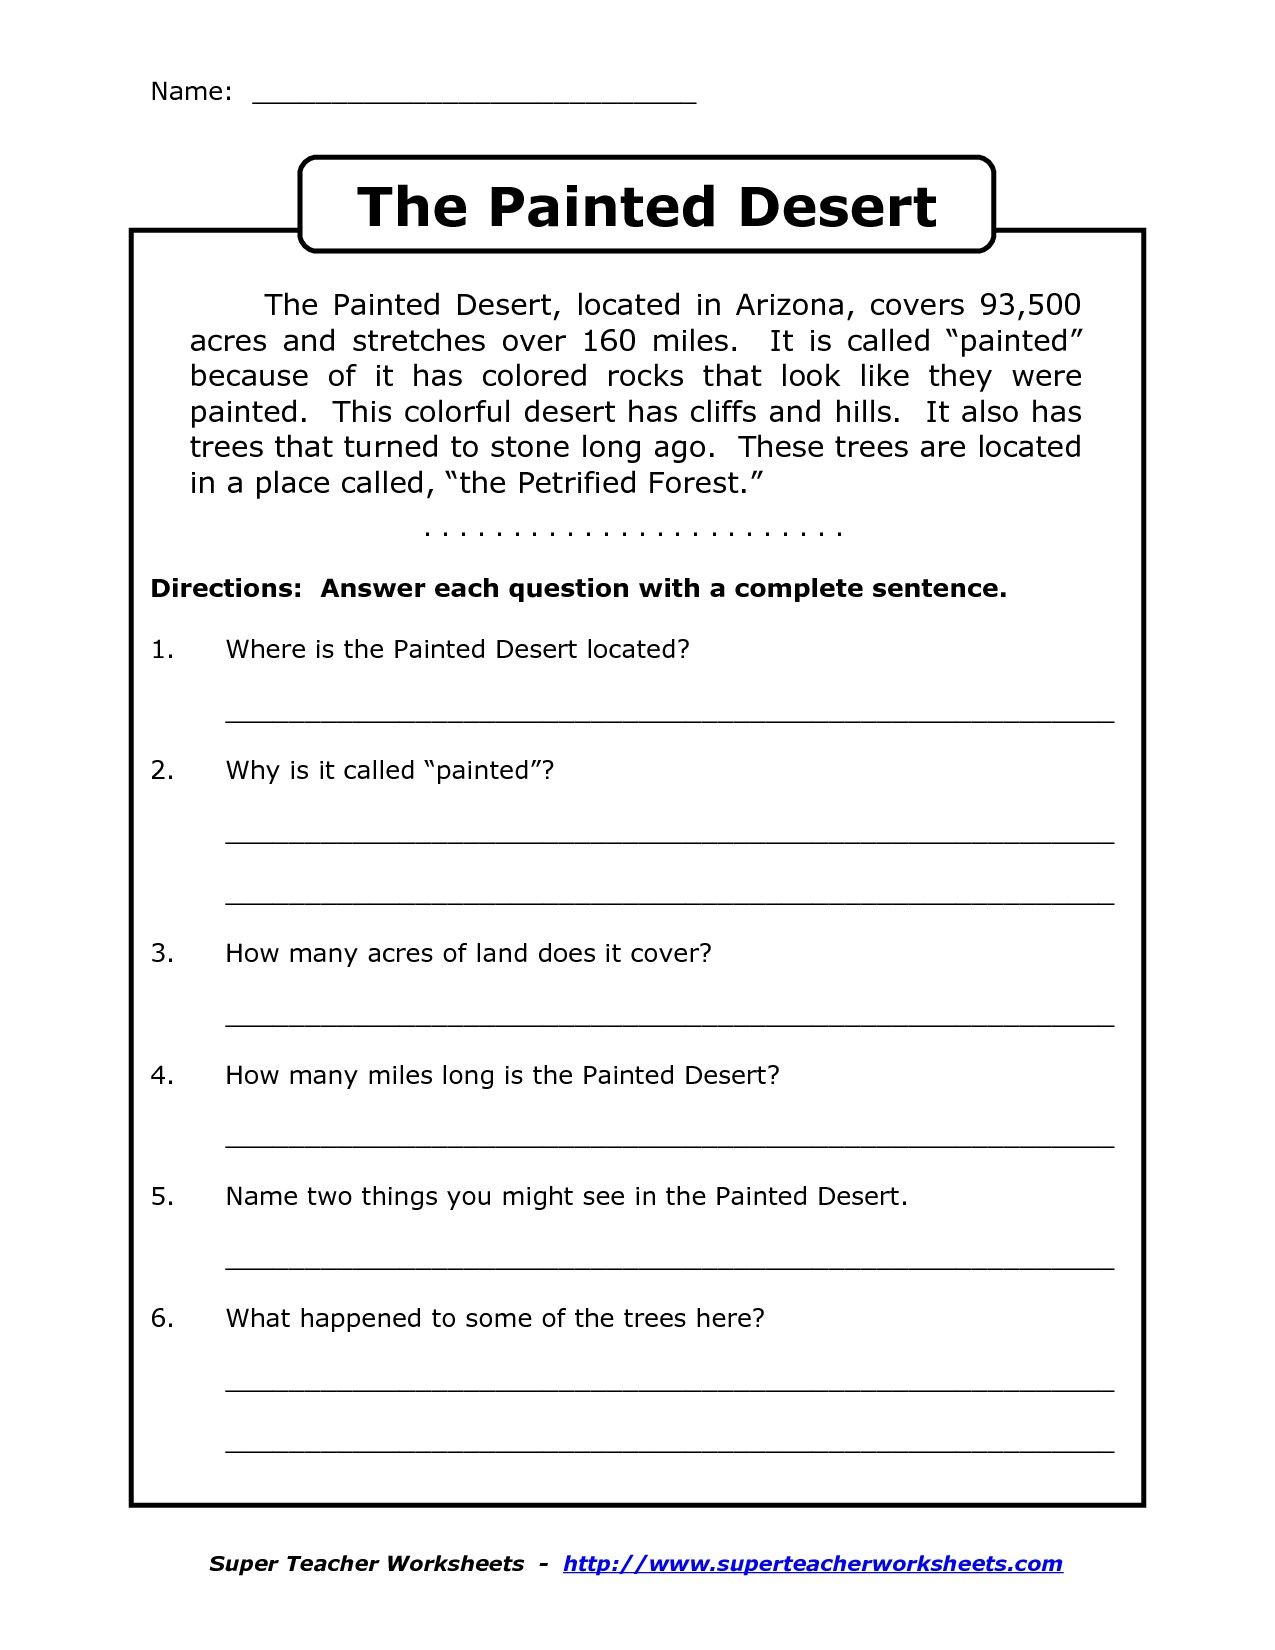 Comprehension Worksheet For 1st Grade Y2 P3 The Painted Desert Arizona Don T Forget To Edit